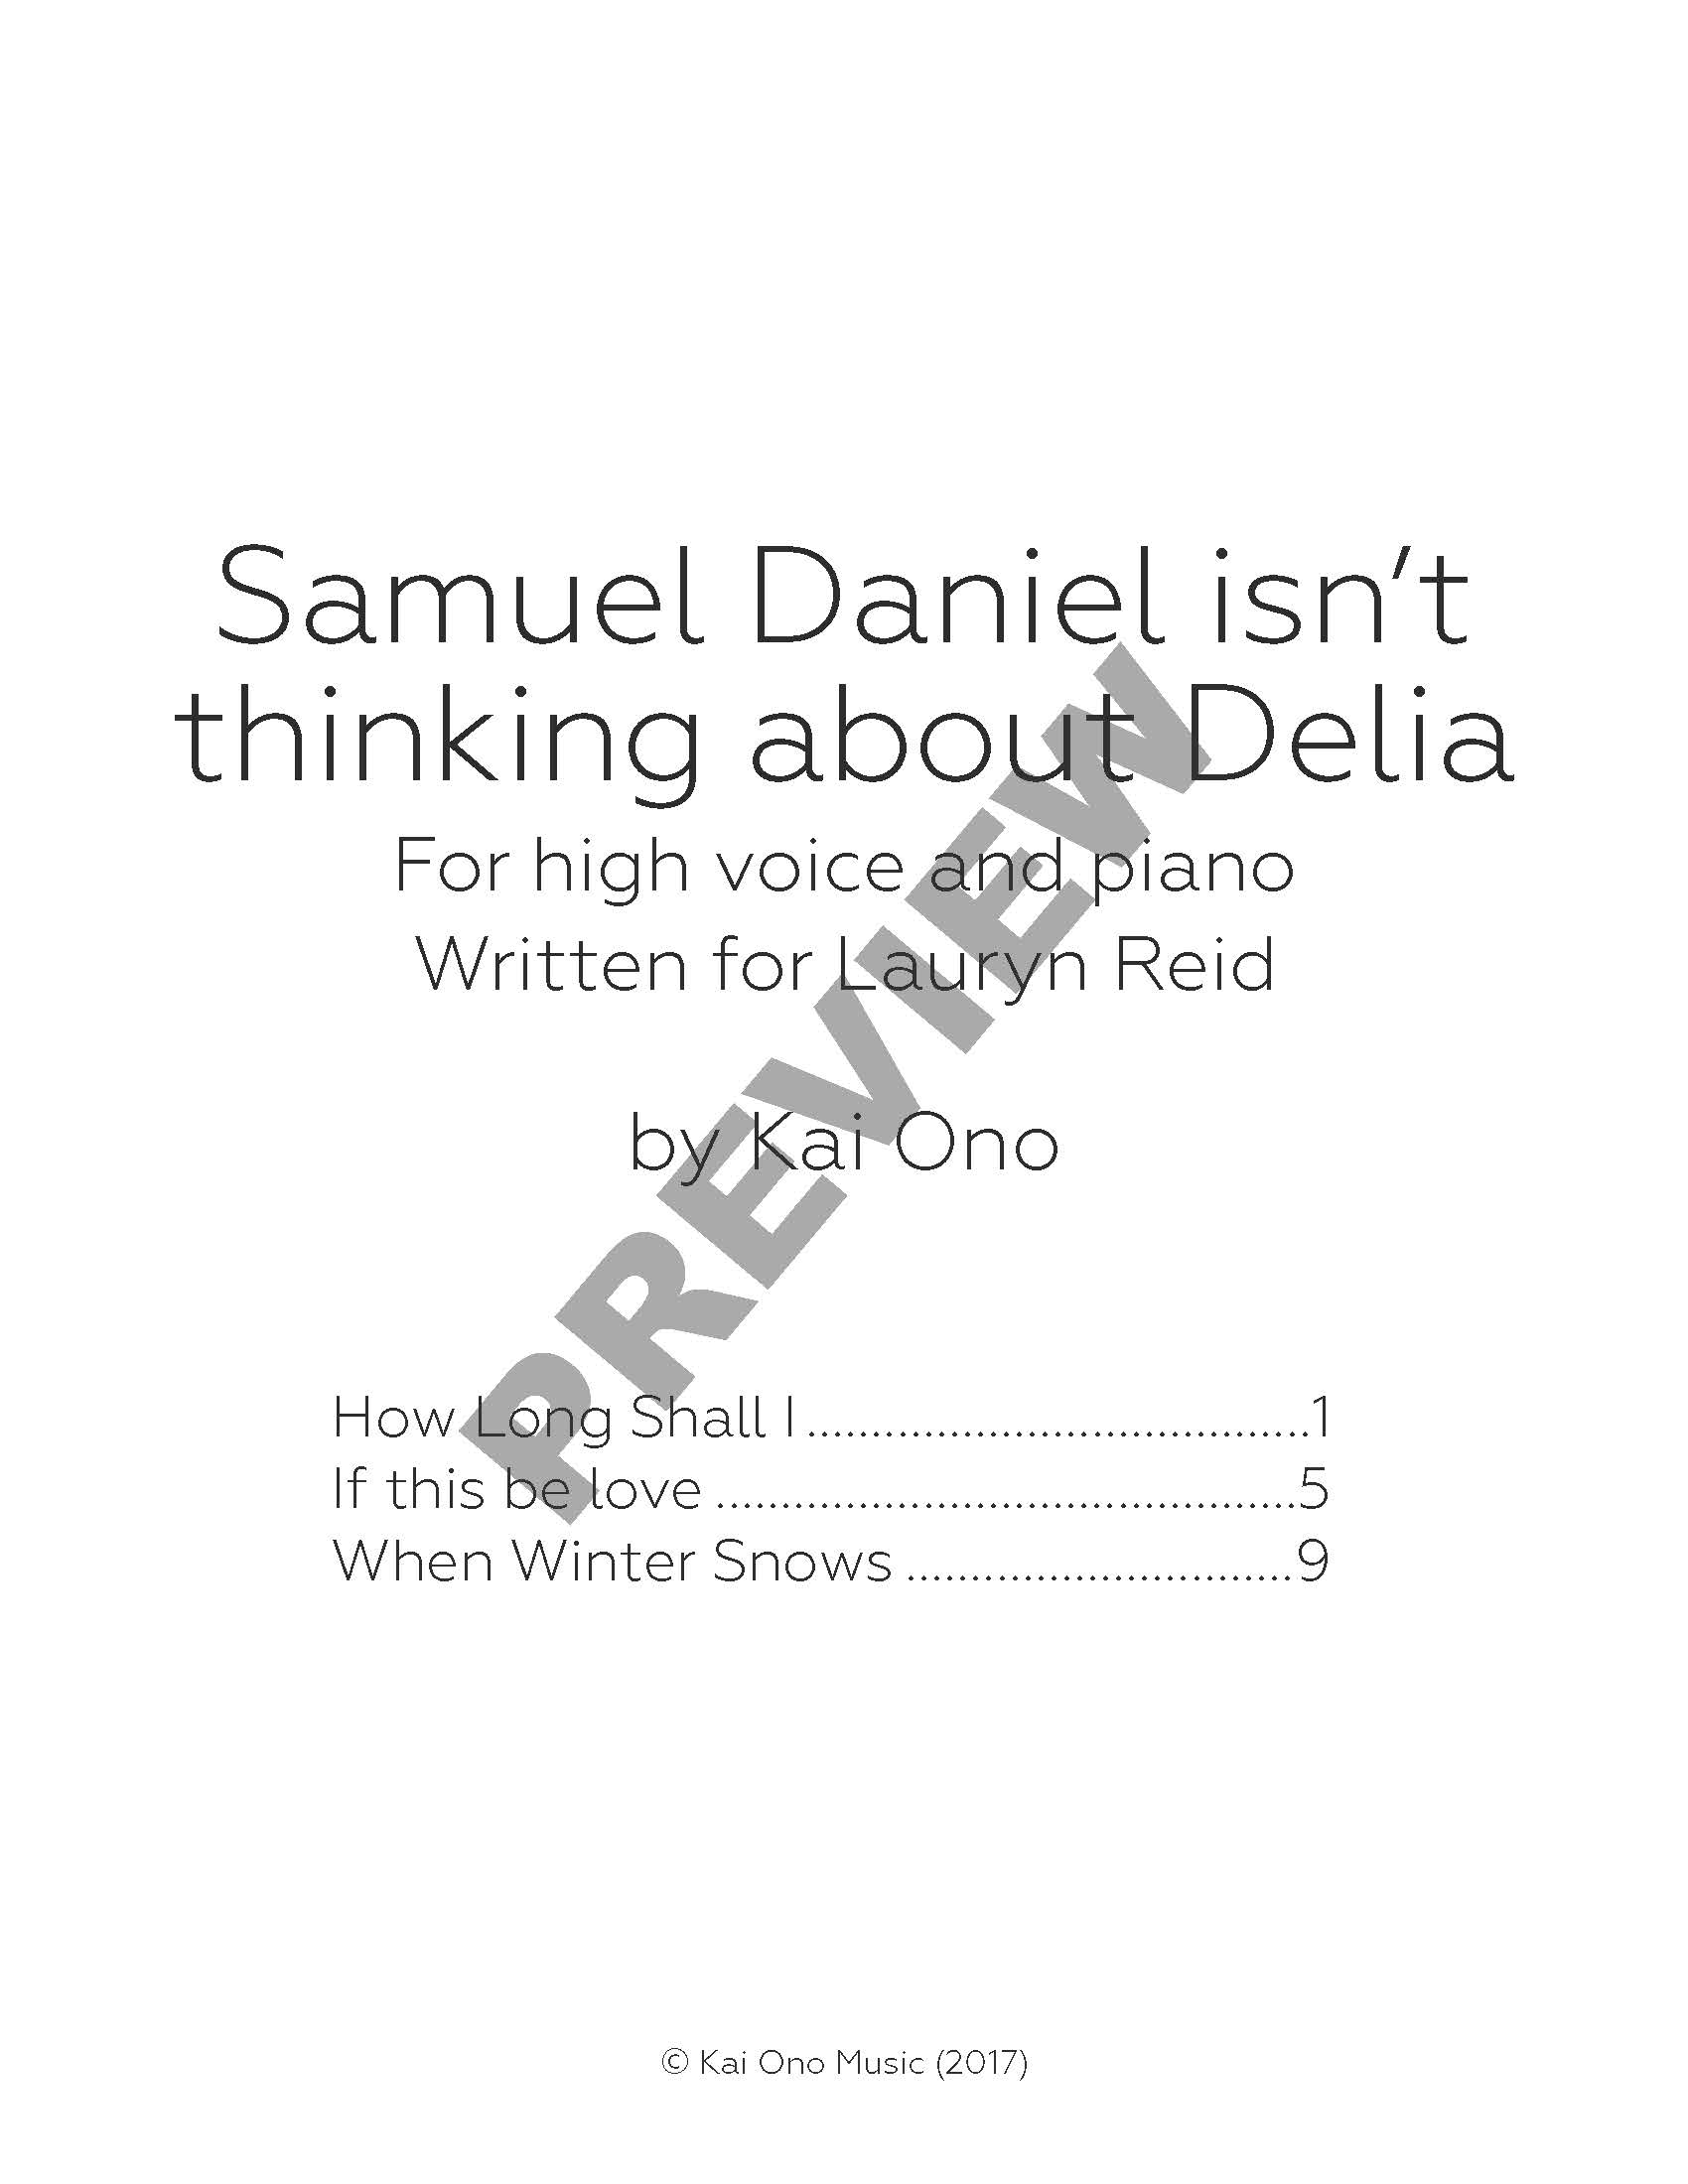 Samuel Daniel Isn't THinking about Delia preview_Page_01.jpg